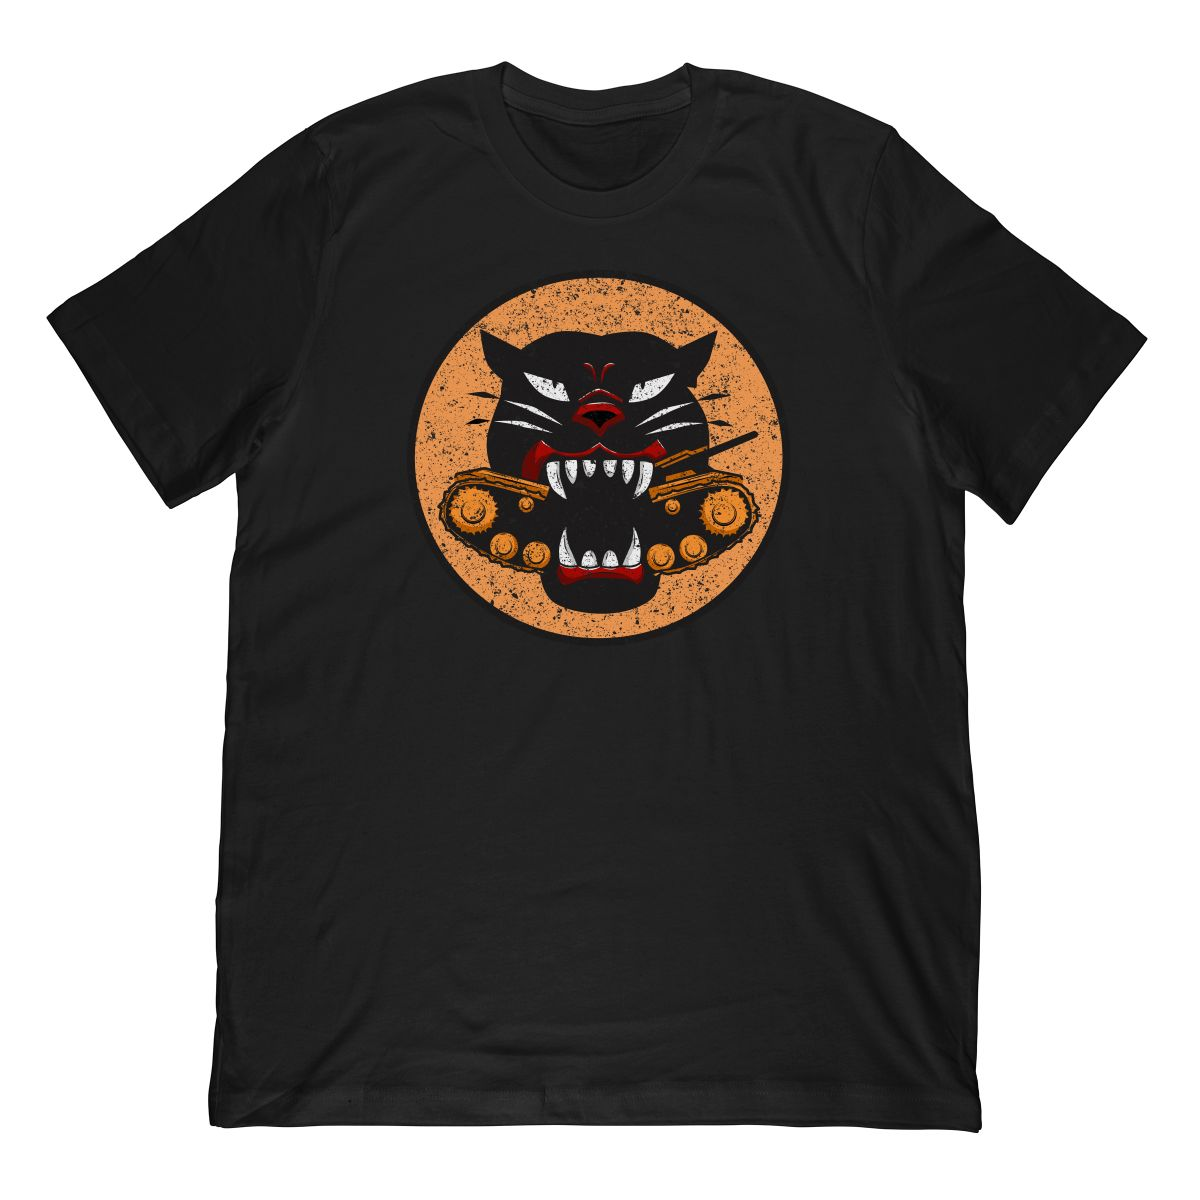 World War II Panther Tank Destroyer Patch T-Shirt